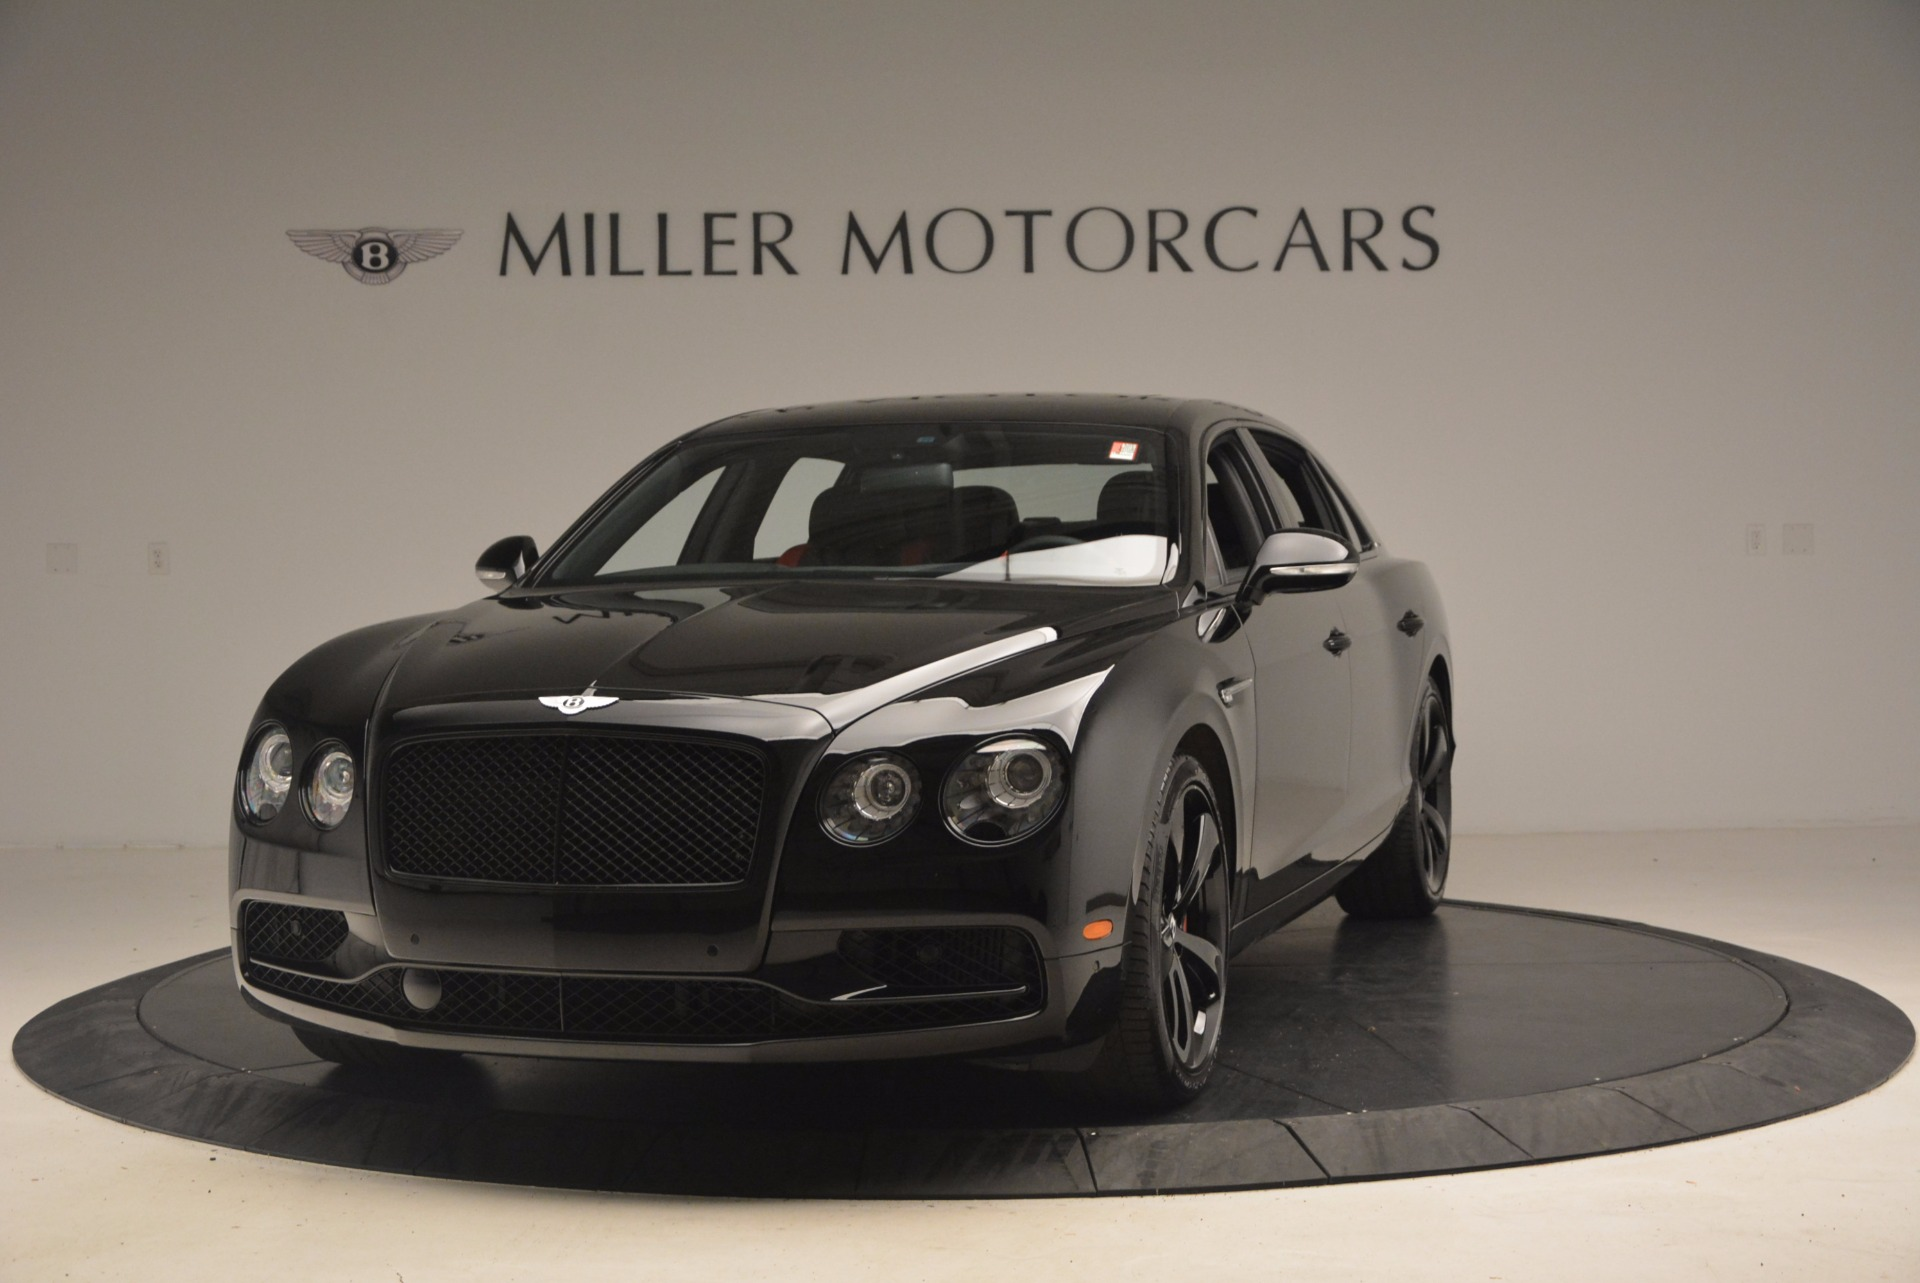 New 2017 Bentley Flying Spur W12 S for sale Sold at Rolls-Royce Motor Cars Greenwich in Greenwich CT 06830 1